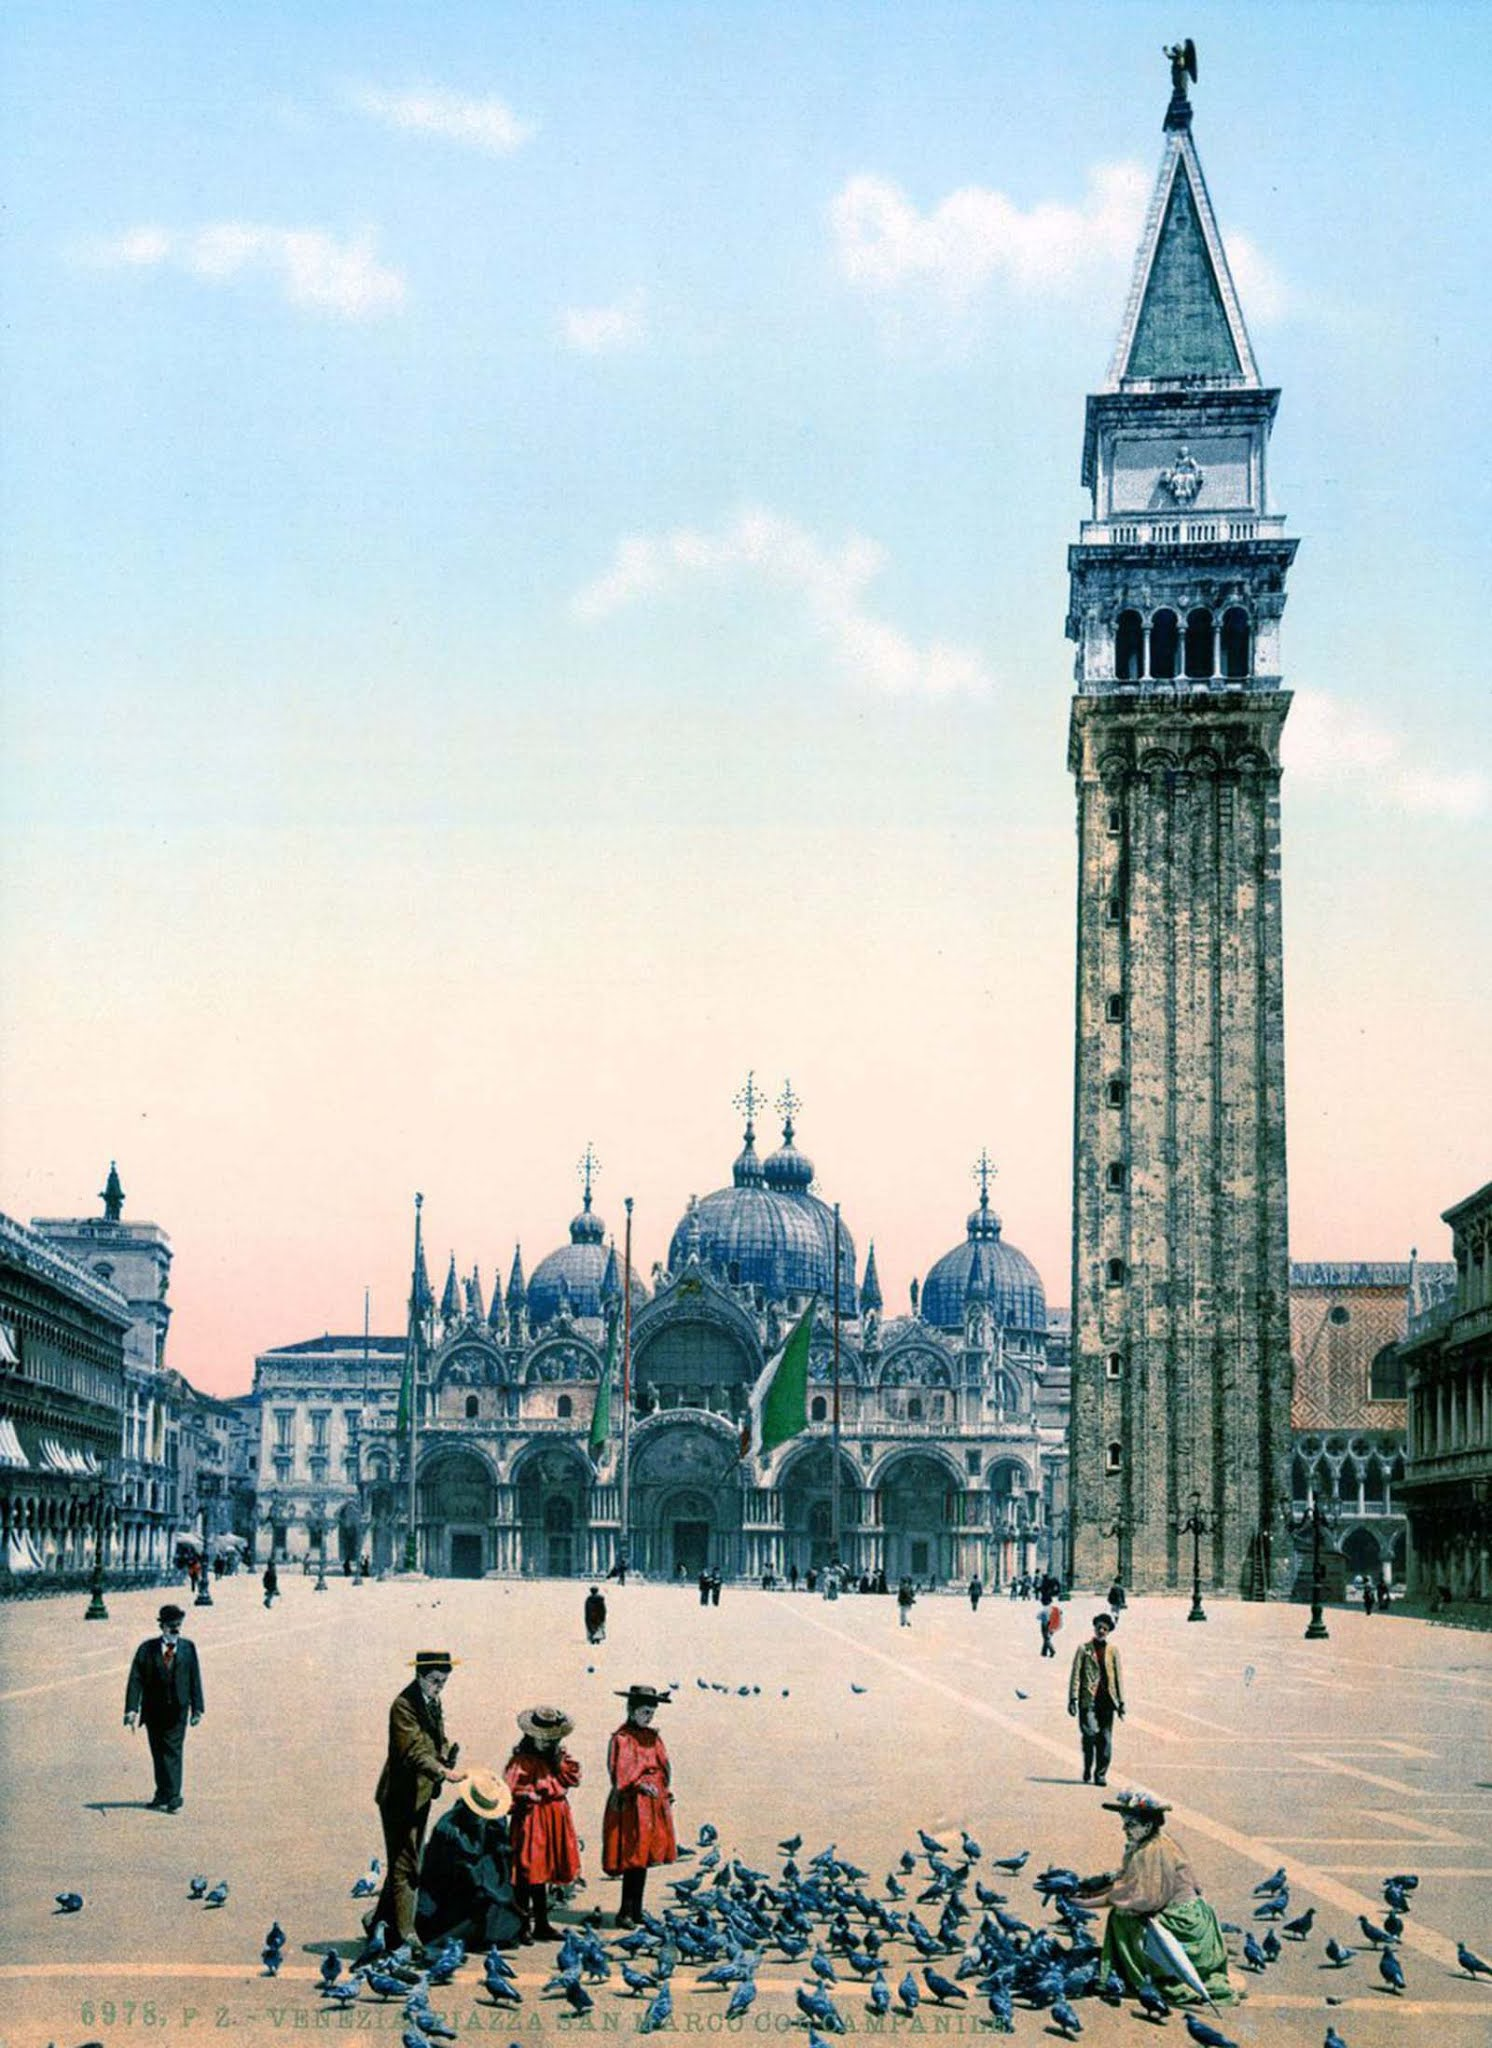 venice-in-beautiful-old-color-images-1890_19.jpg